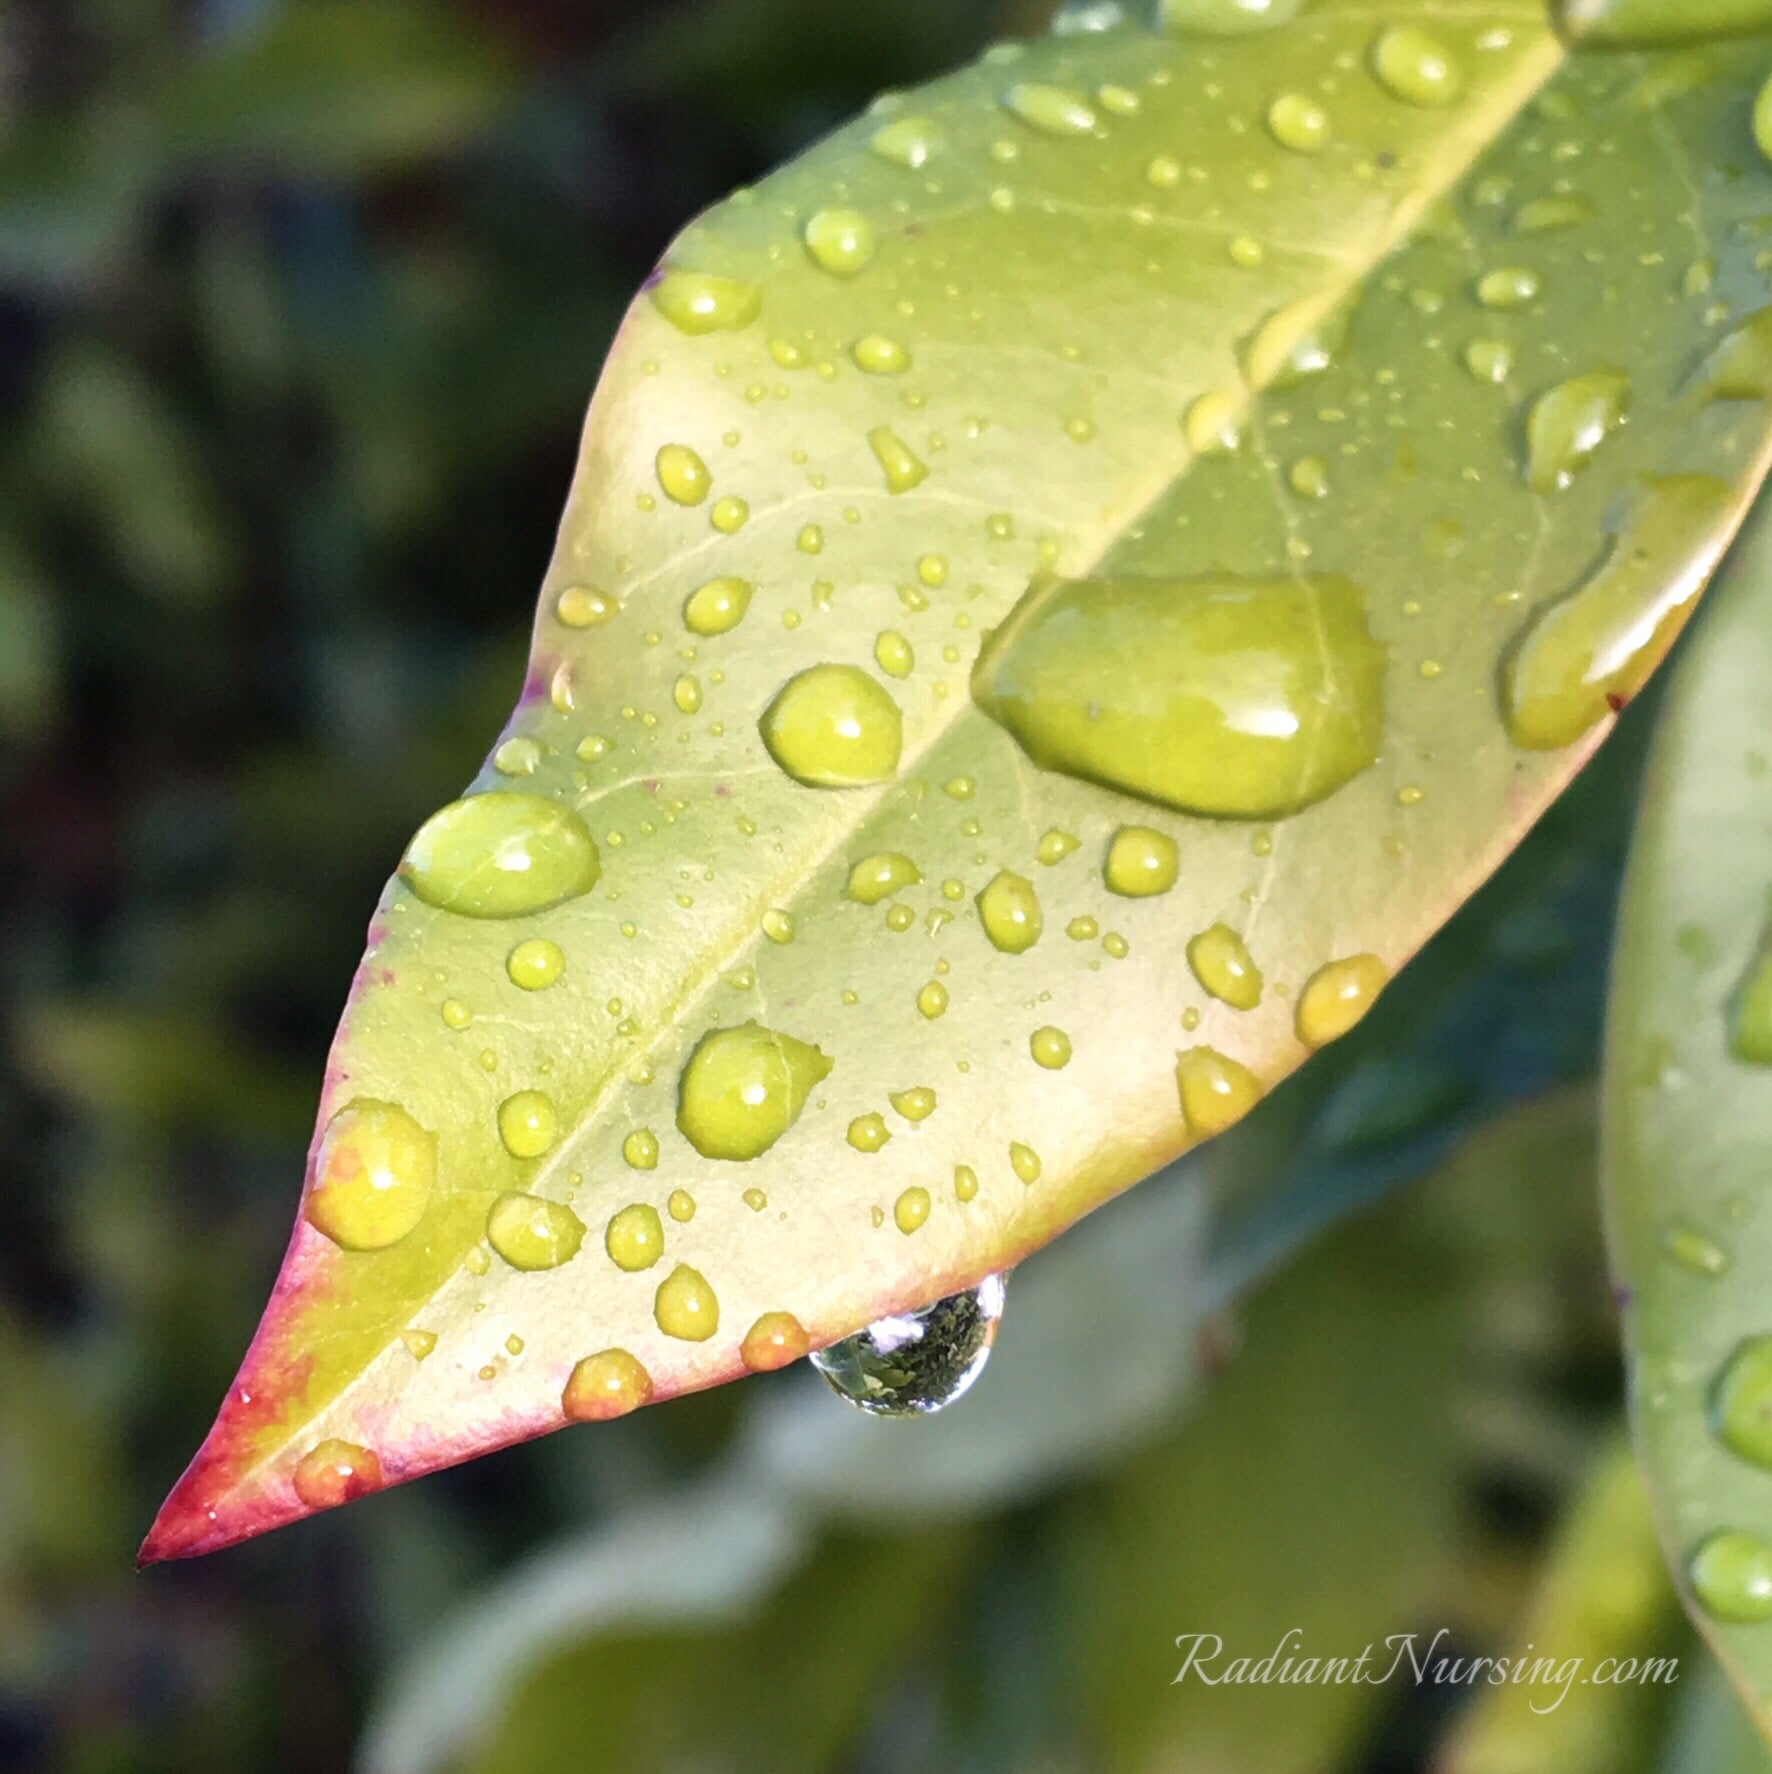 After the rain, water drops on a leaf. Nature in your own backyard.